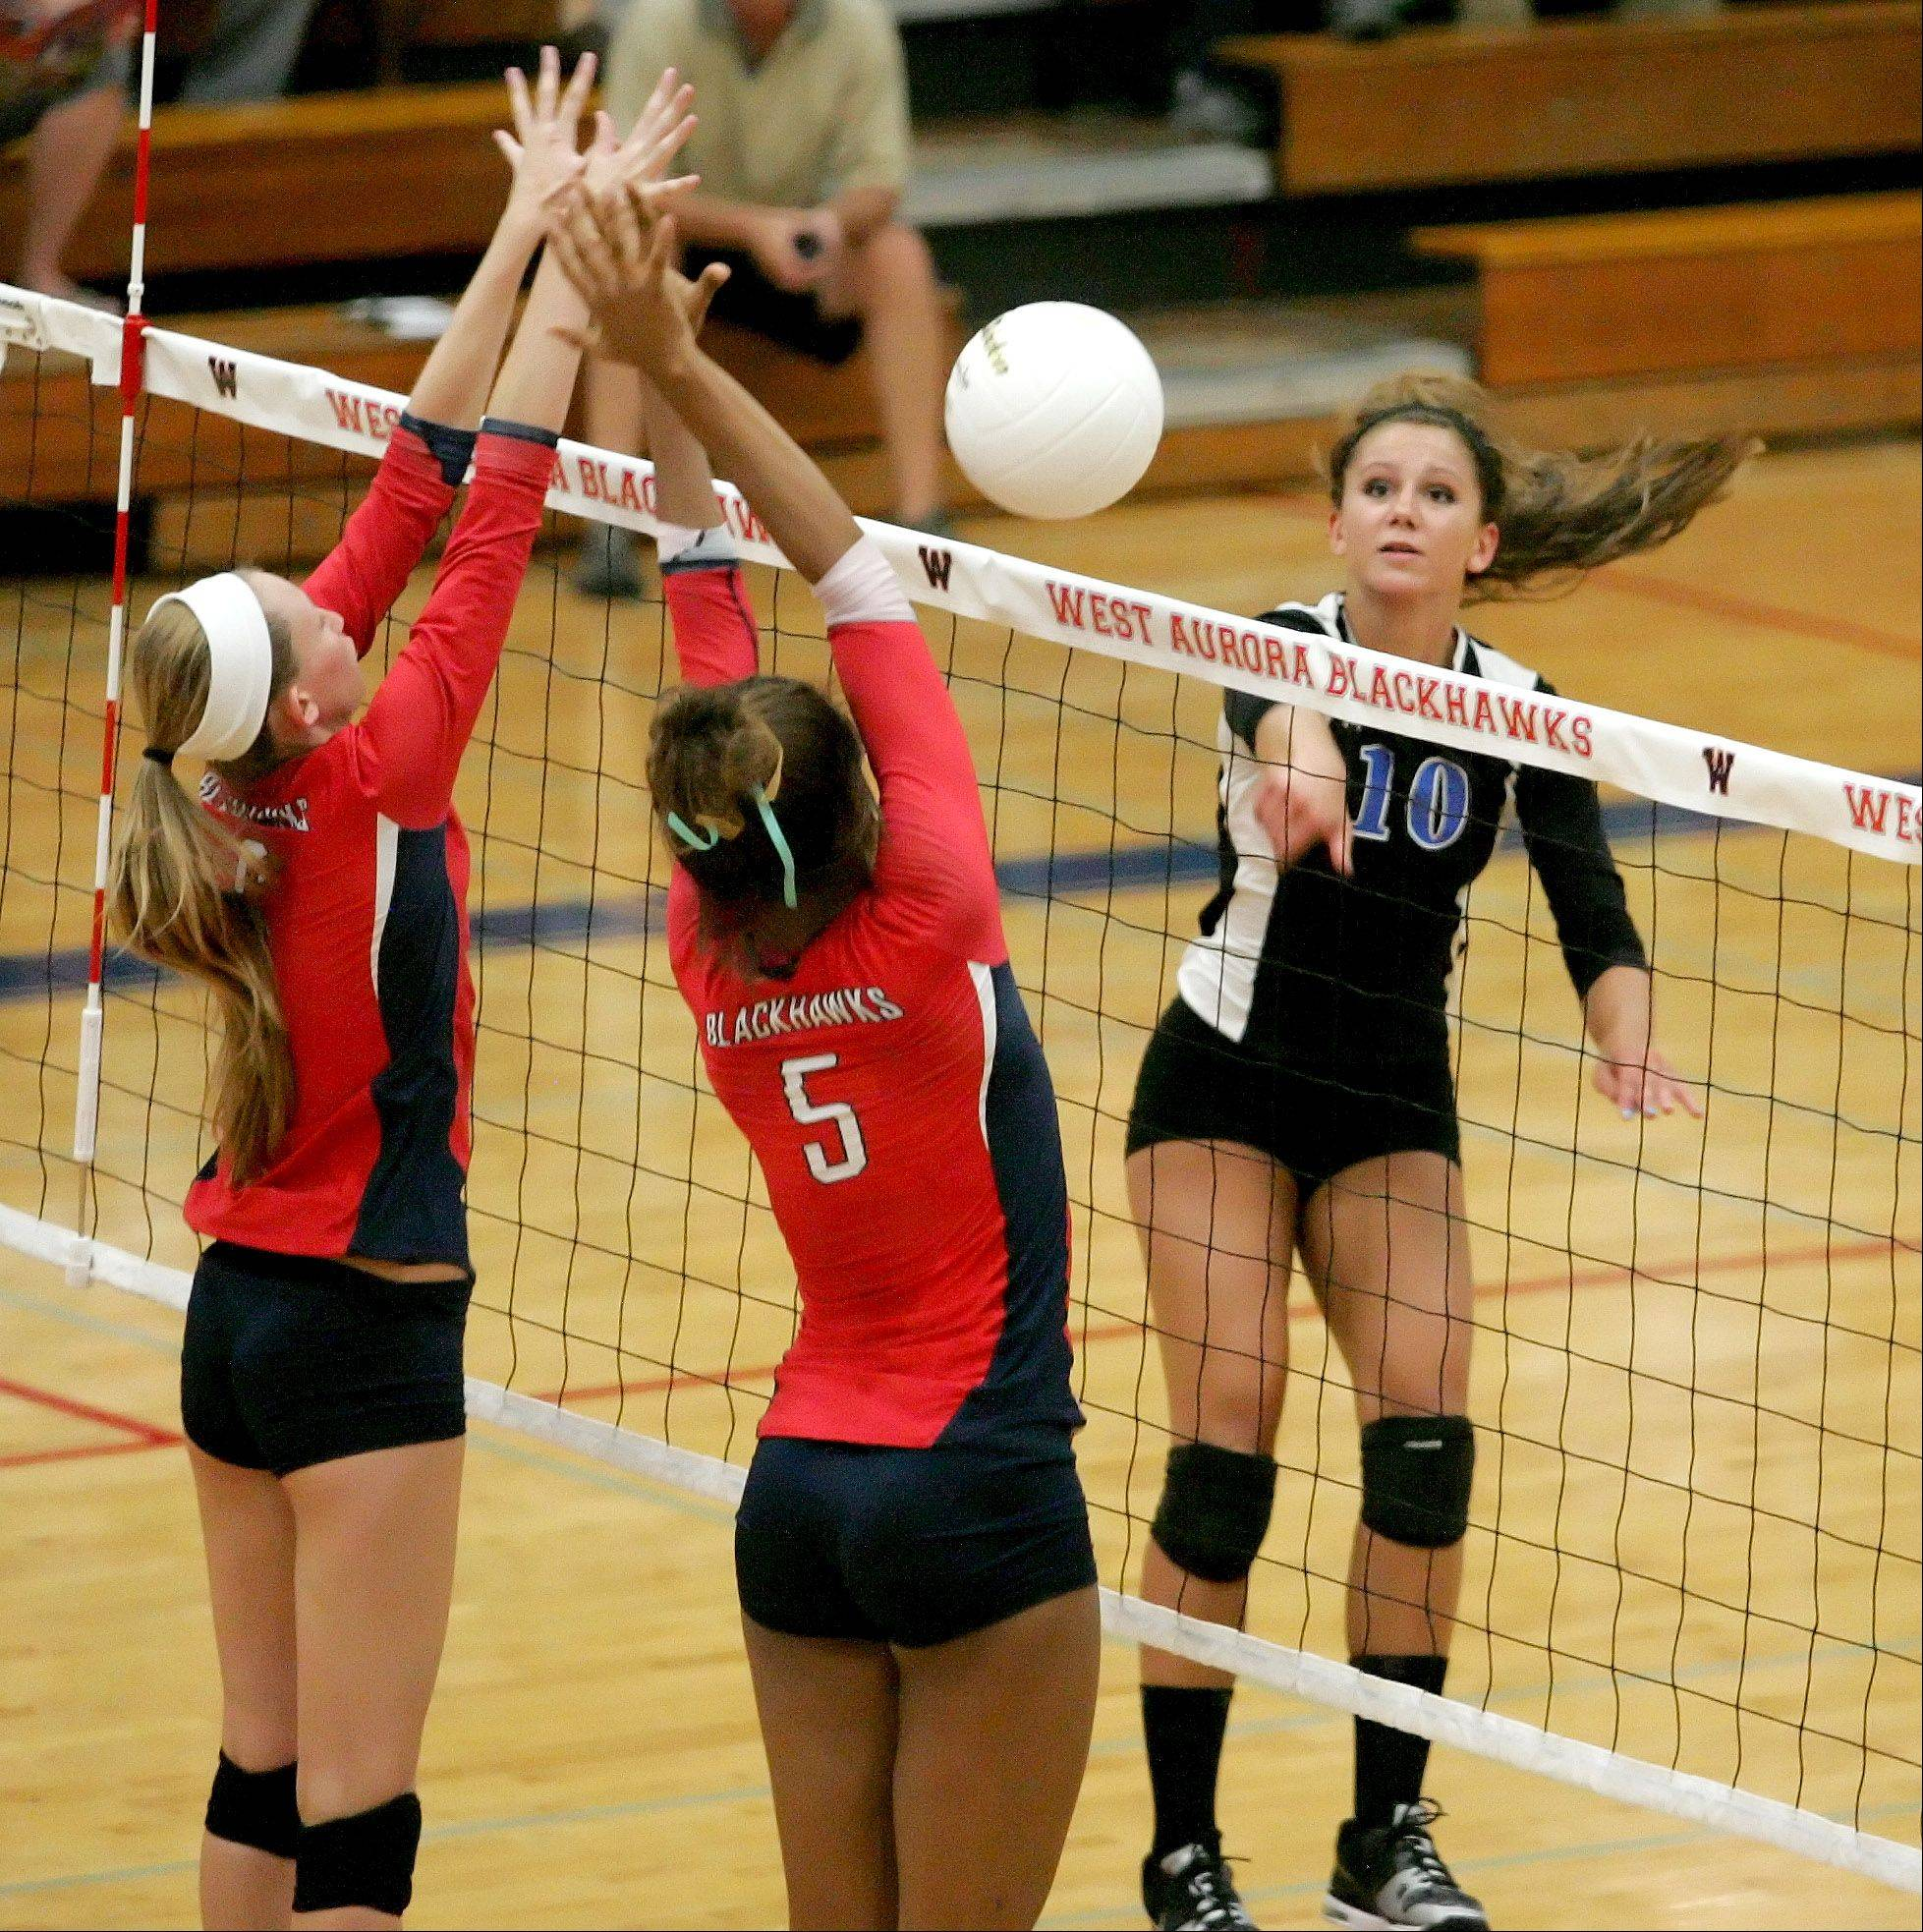 Hannah Buck of Geneva hits the ball past Nerissa Vogt of West Aurora in girls volleyball action in Aurora on Monday.